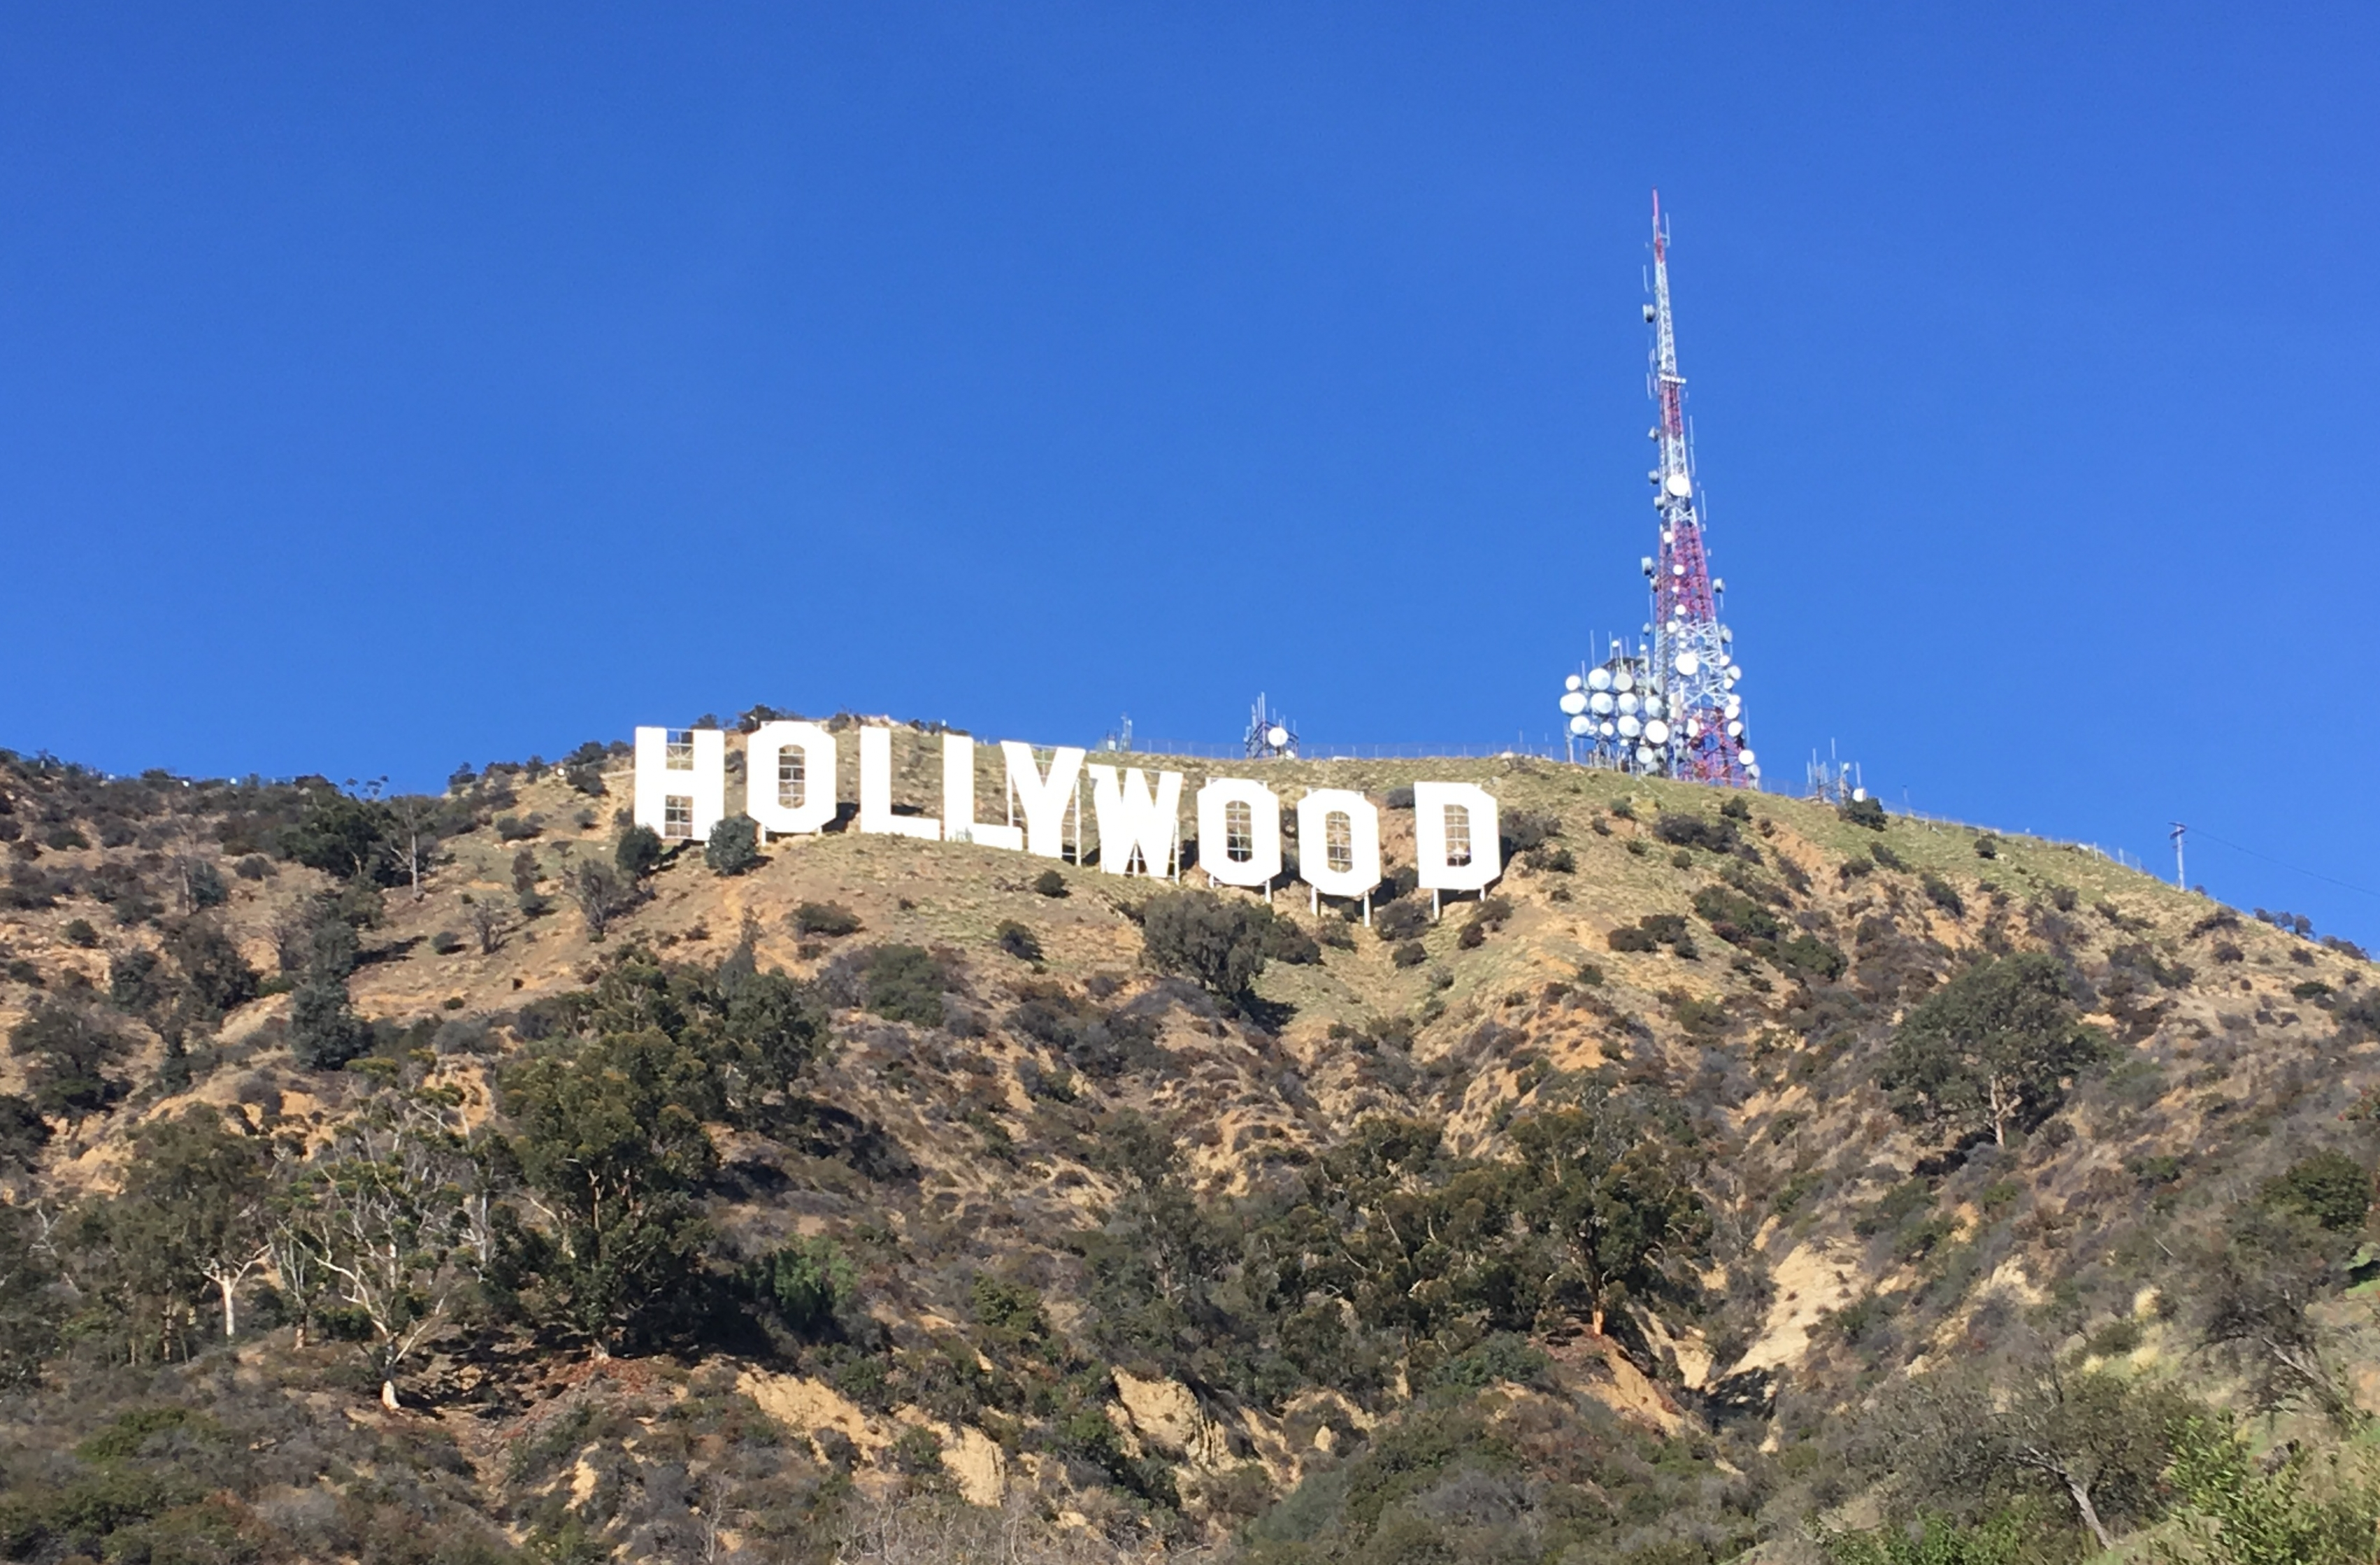 All Day L.A. Bucket List Private Tour, with Convenient Pick Up at Your Hotel or Location: In Los Angeles, California (1)